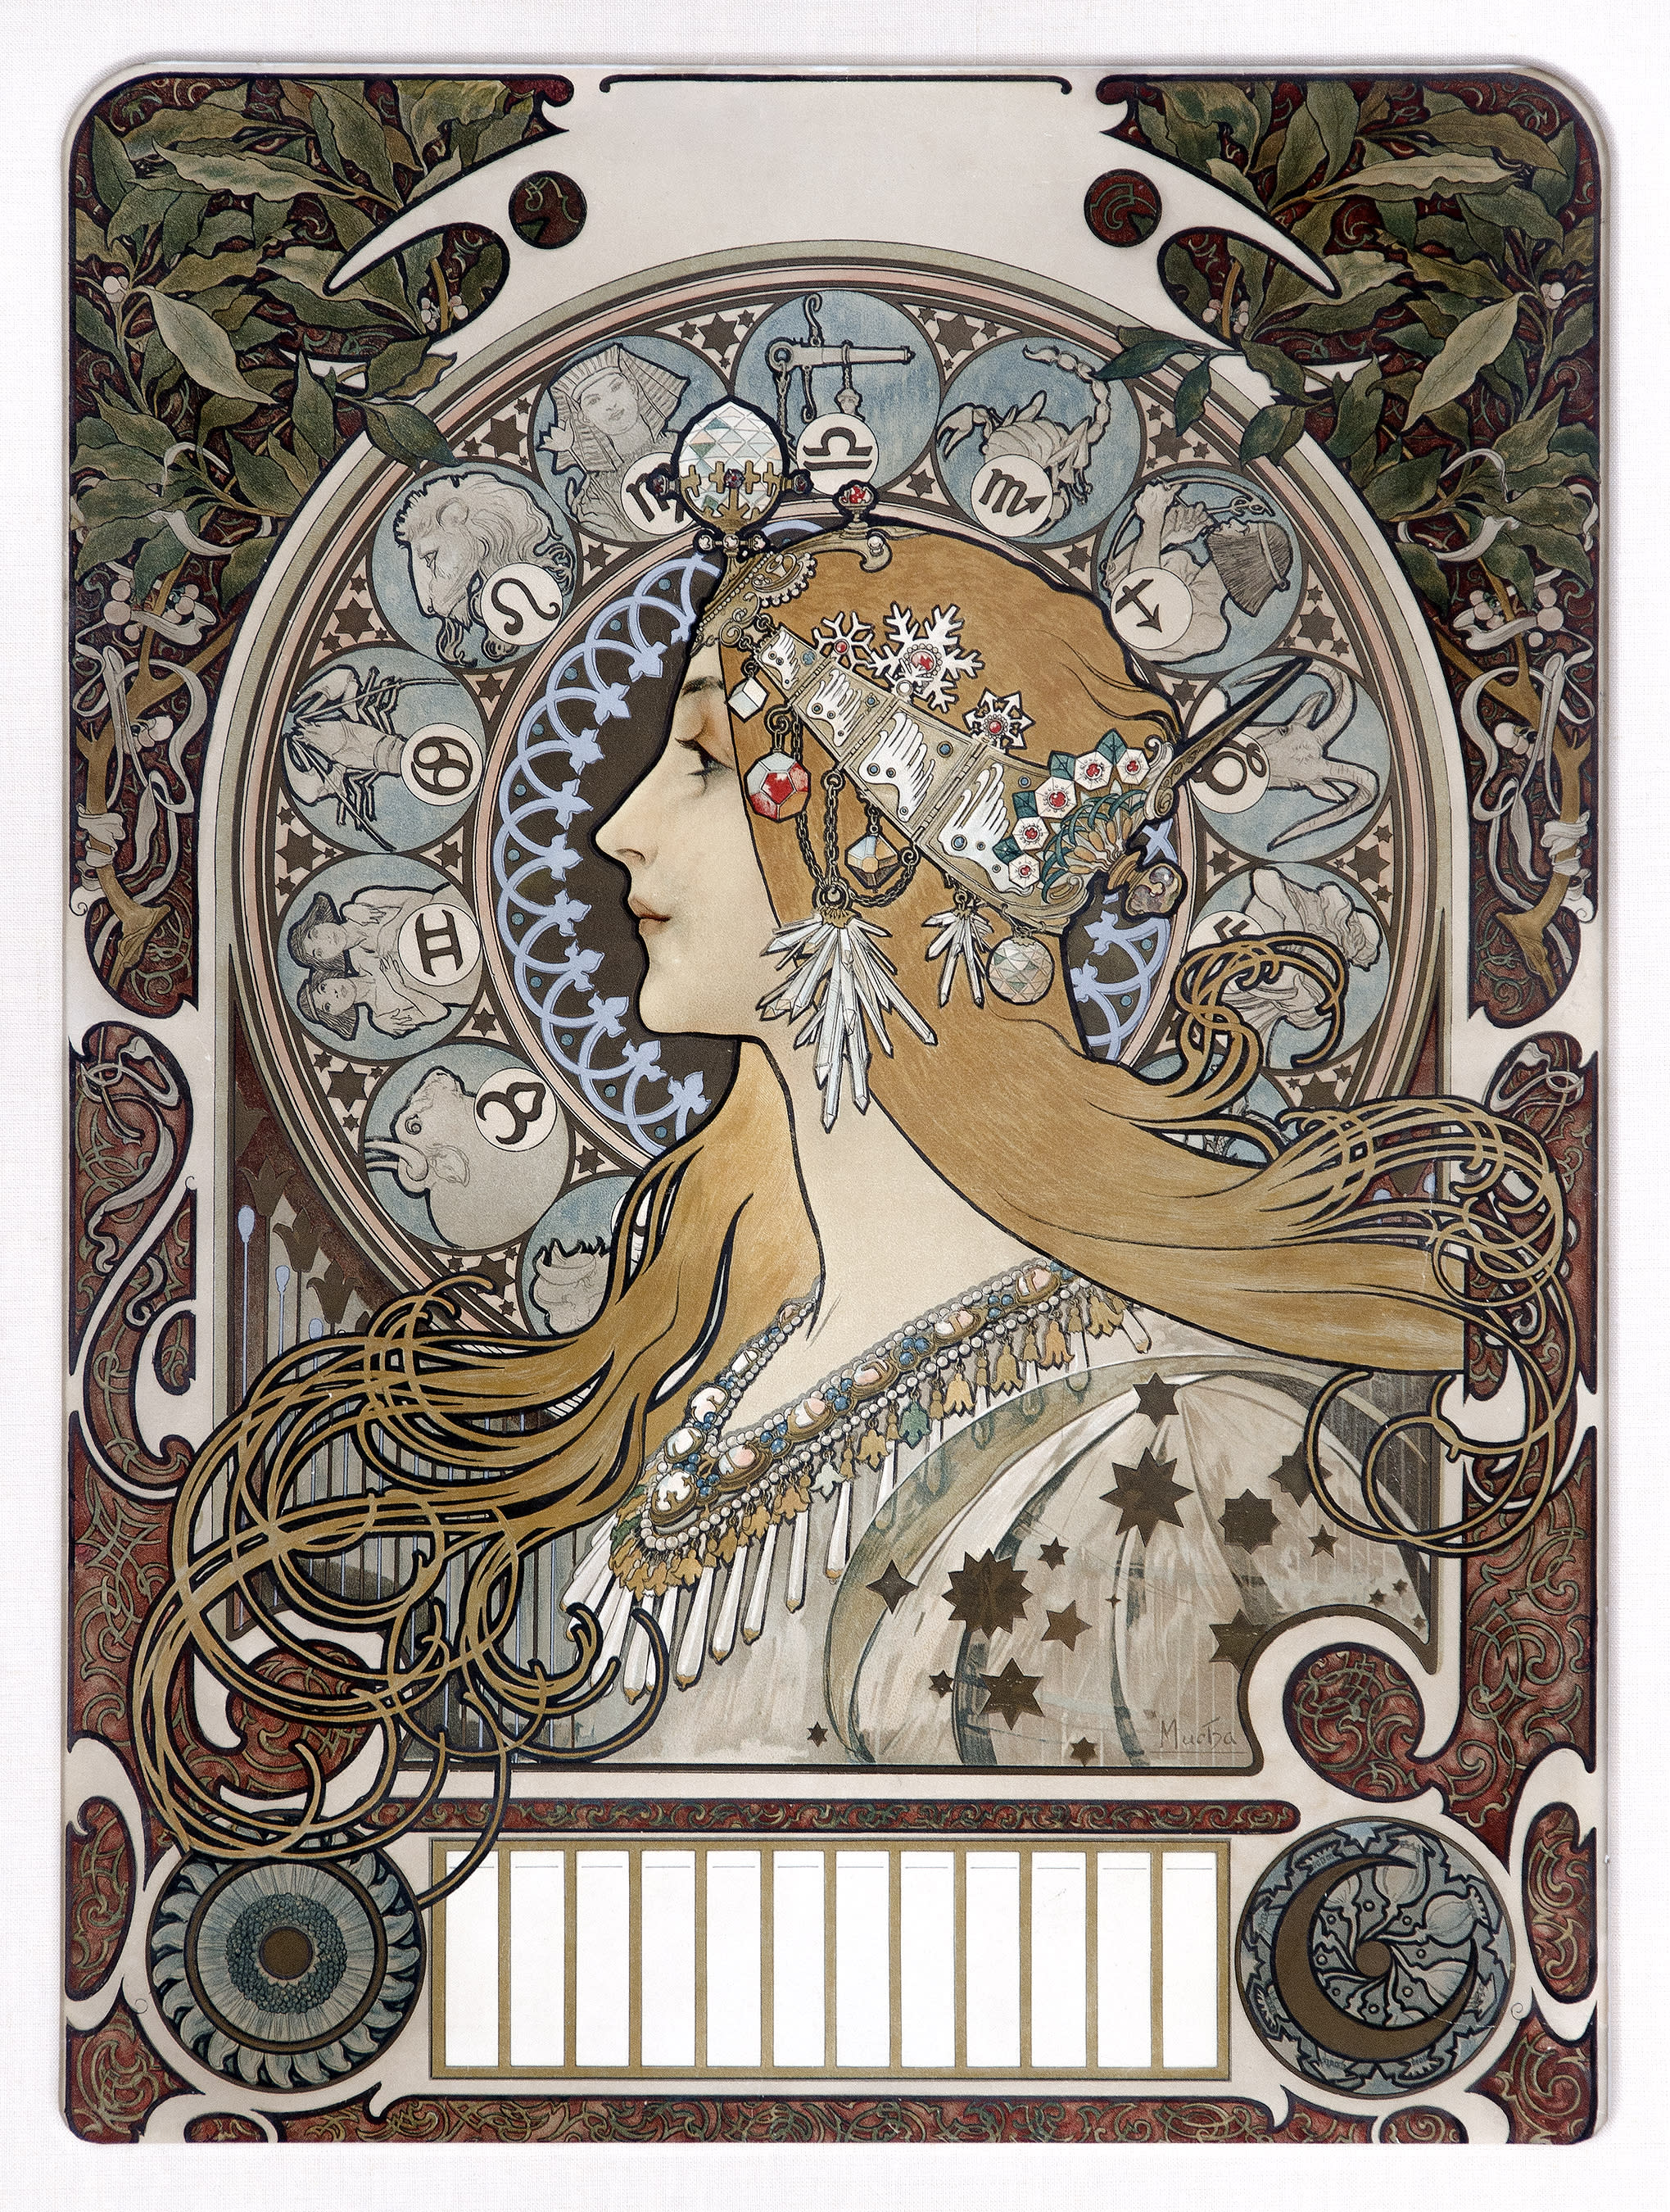 Crown-Alphonse Mucha, Zodiaque, 1896. Color lithograph on paper.